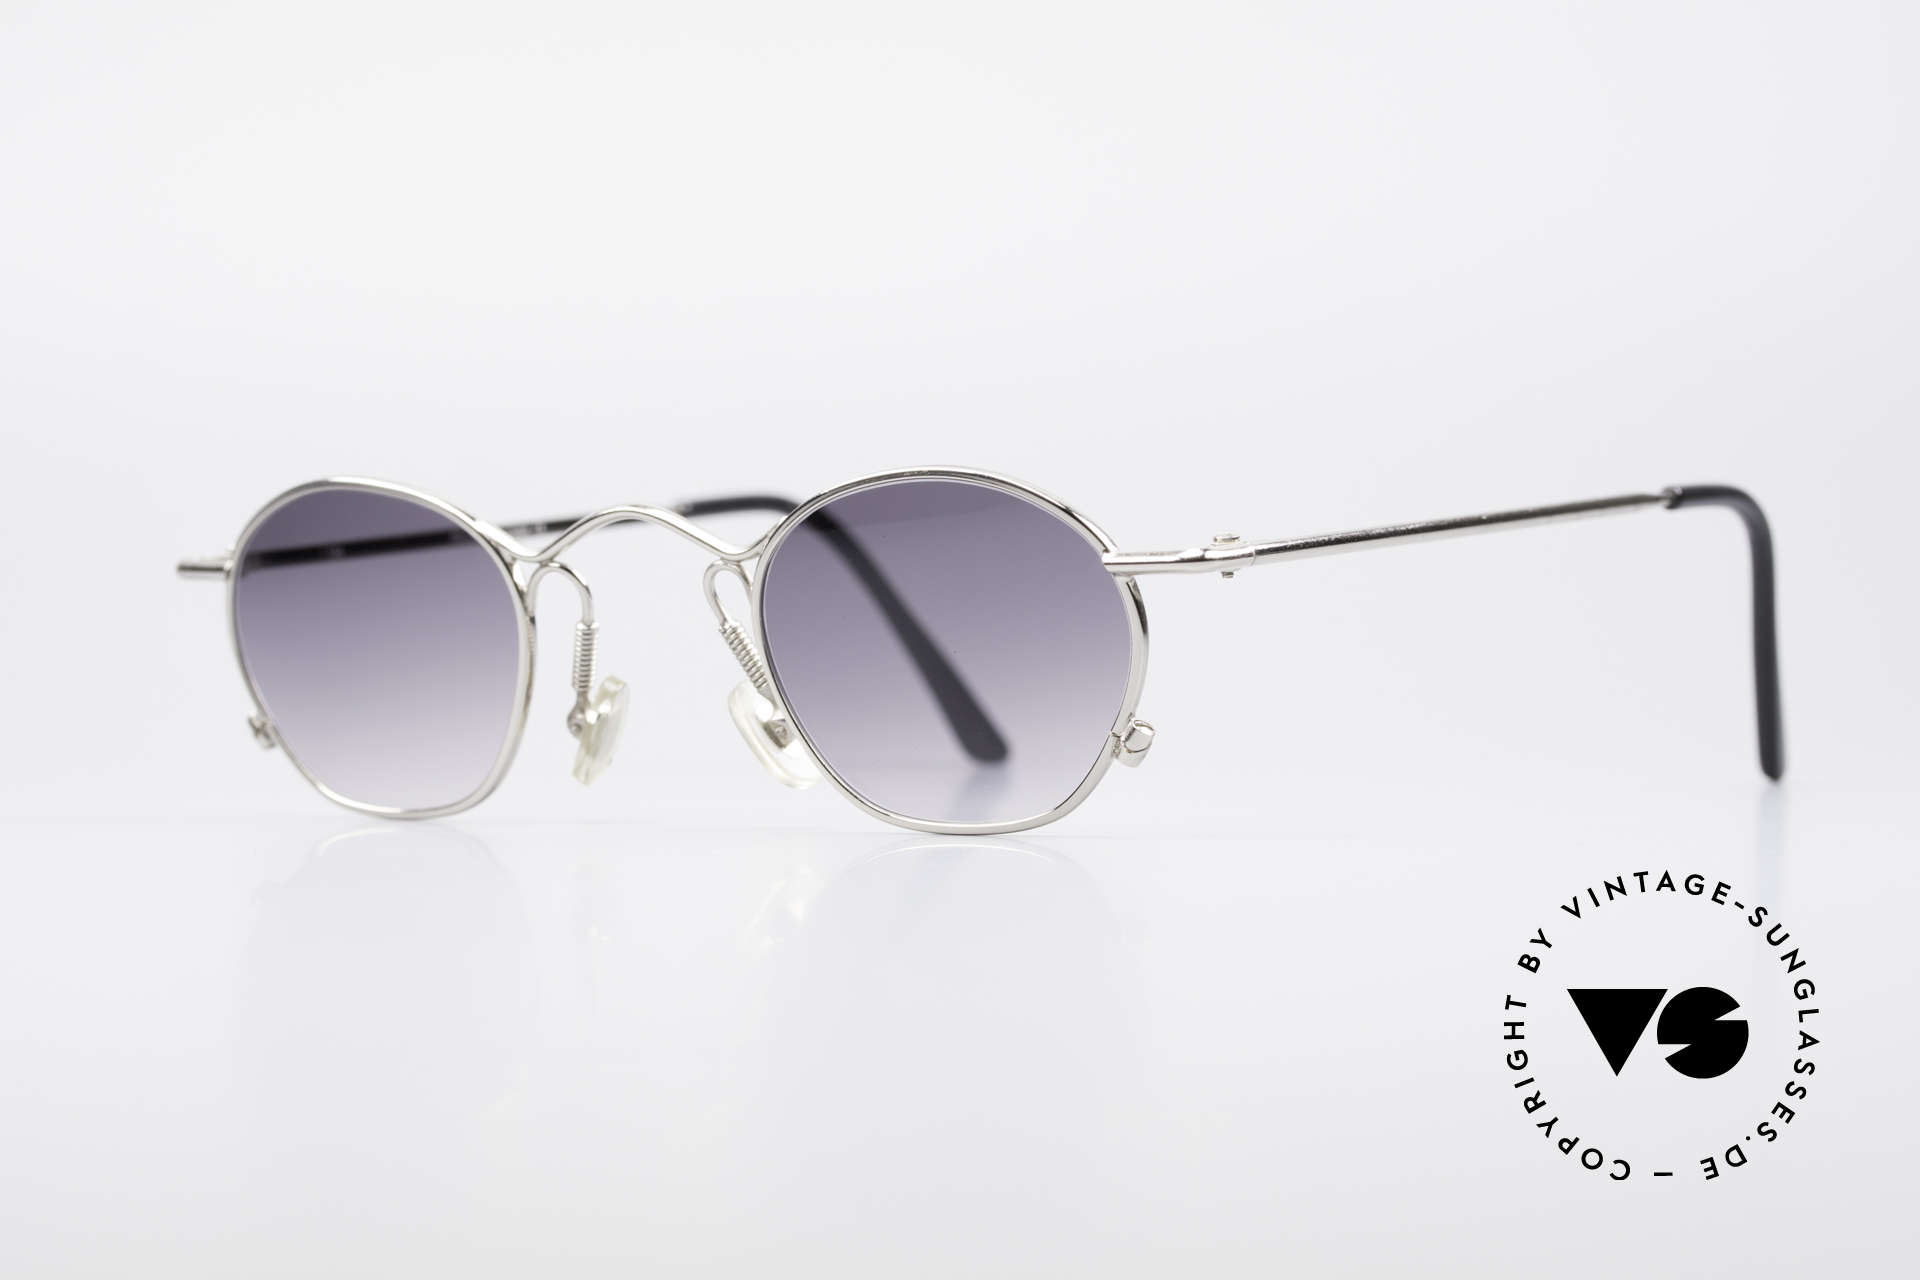 IDC 101 True Vintage No Retro Shades, timeless unisex model in SMALL SIZE (125 width)!, Made for Men and Women